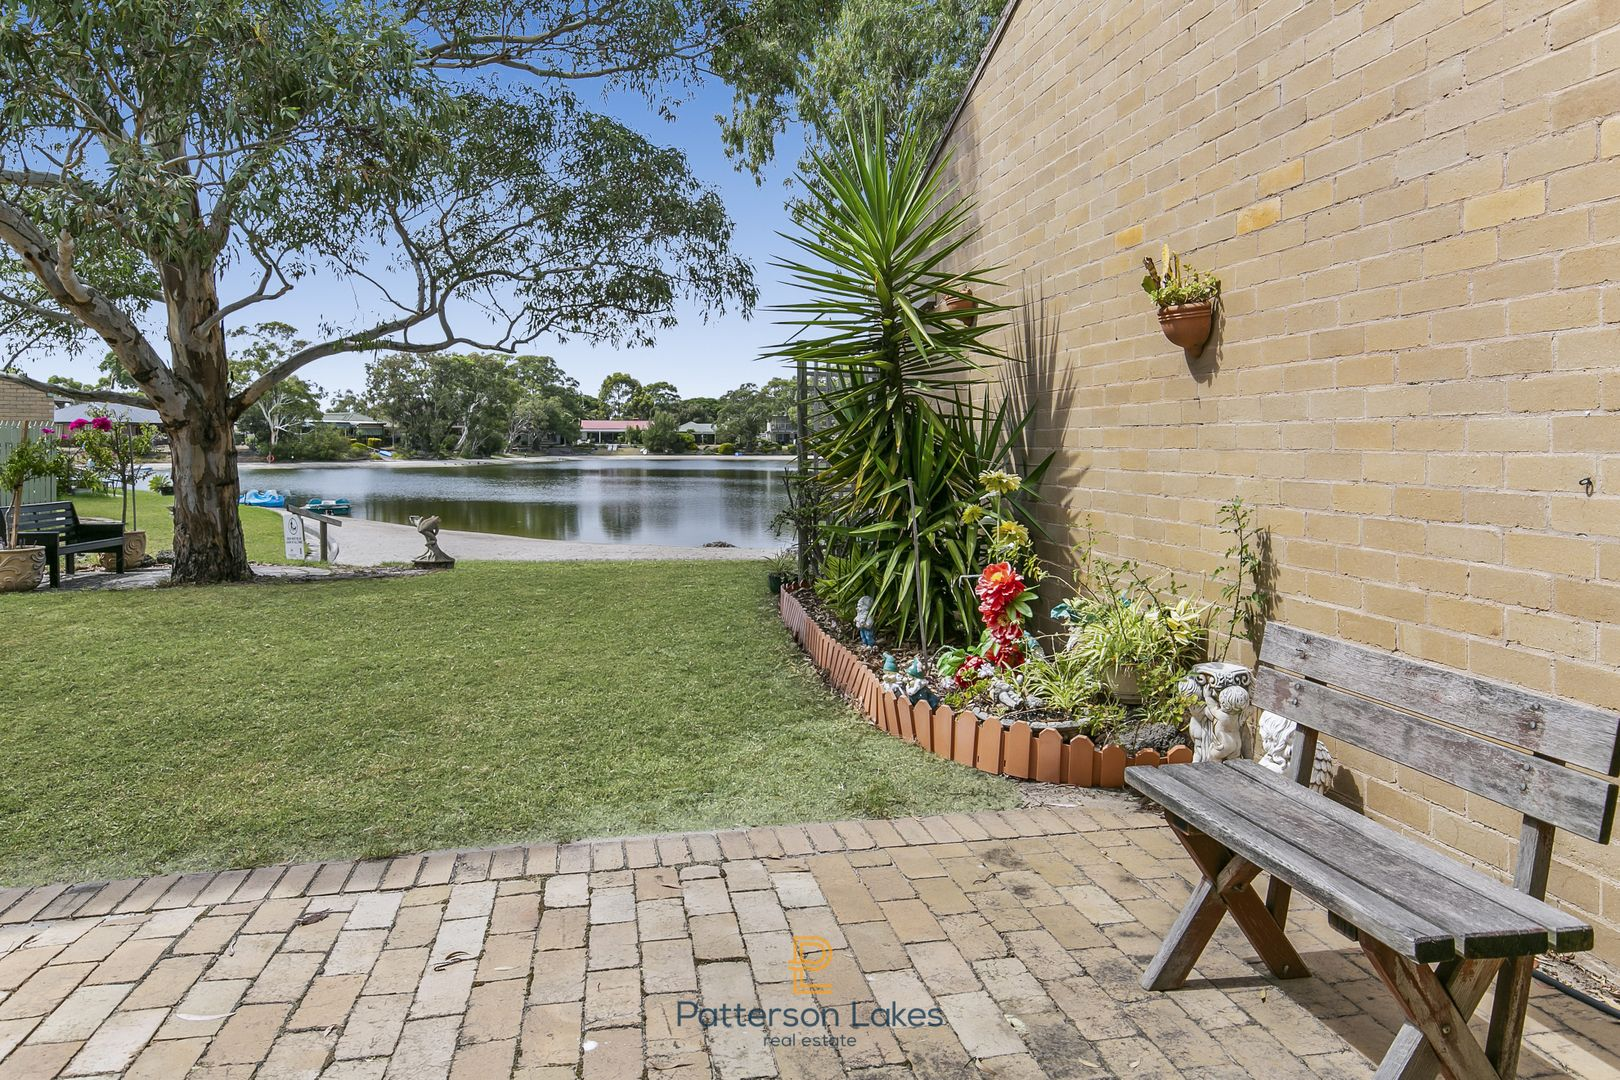 15/75-93 Gladesville Boulevard, Patterson Lakes VIC 3197, Image 0